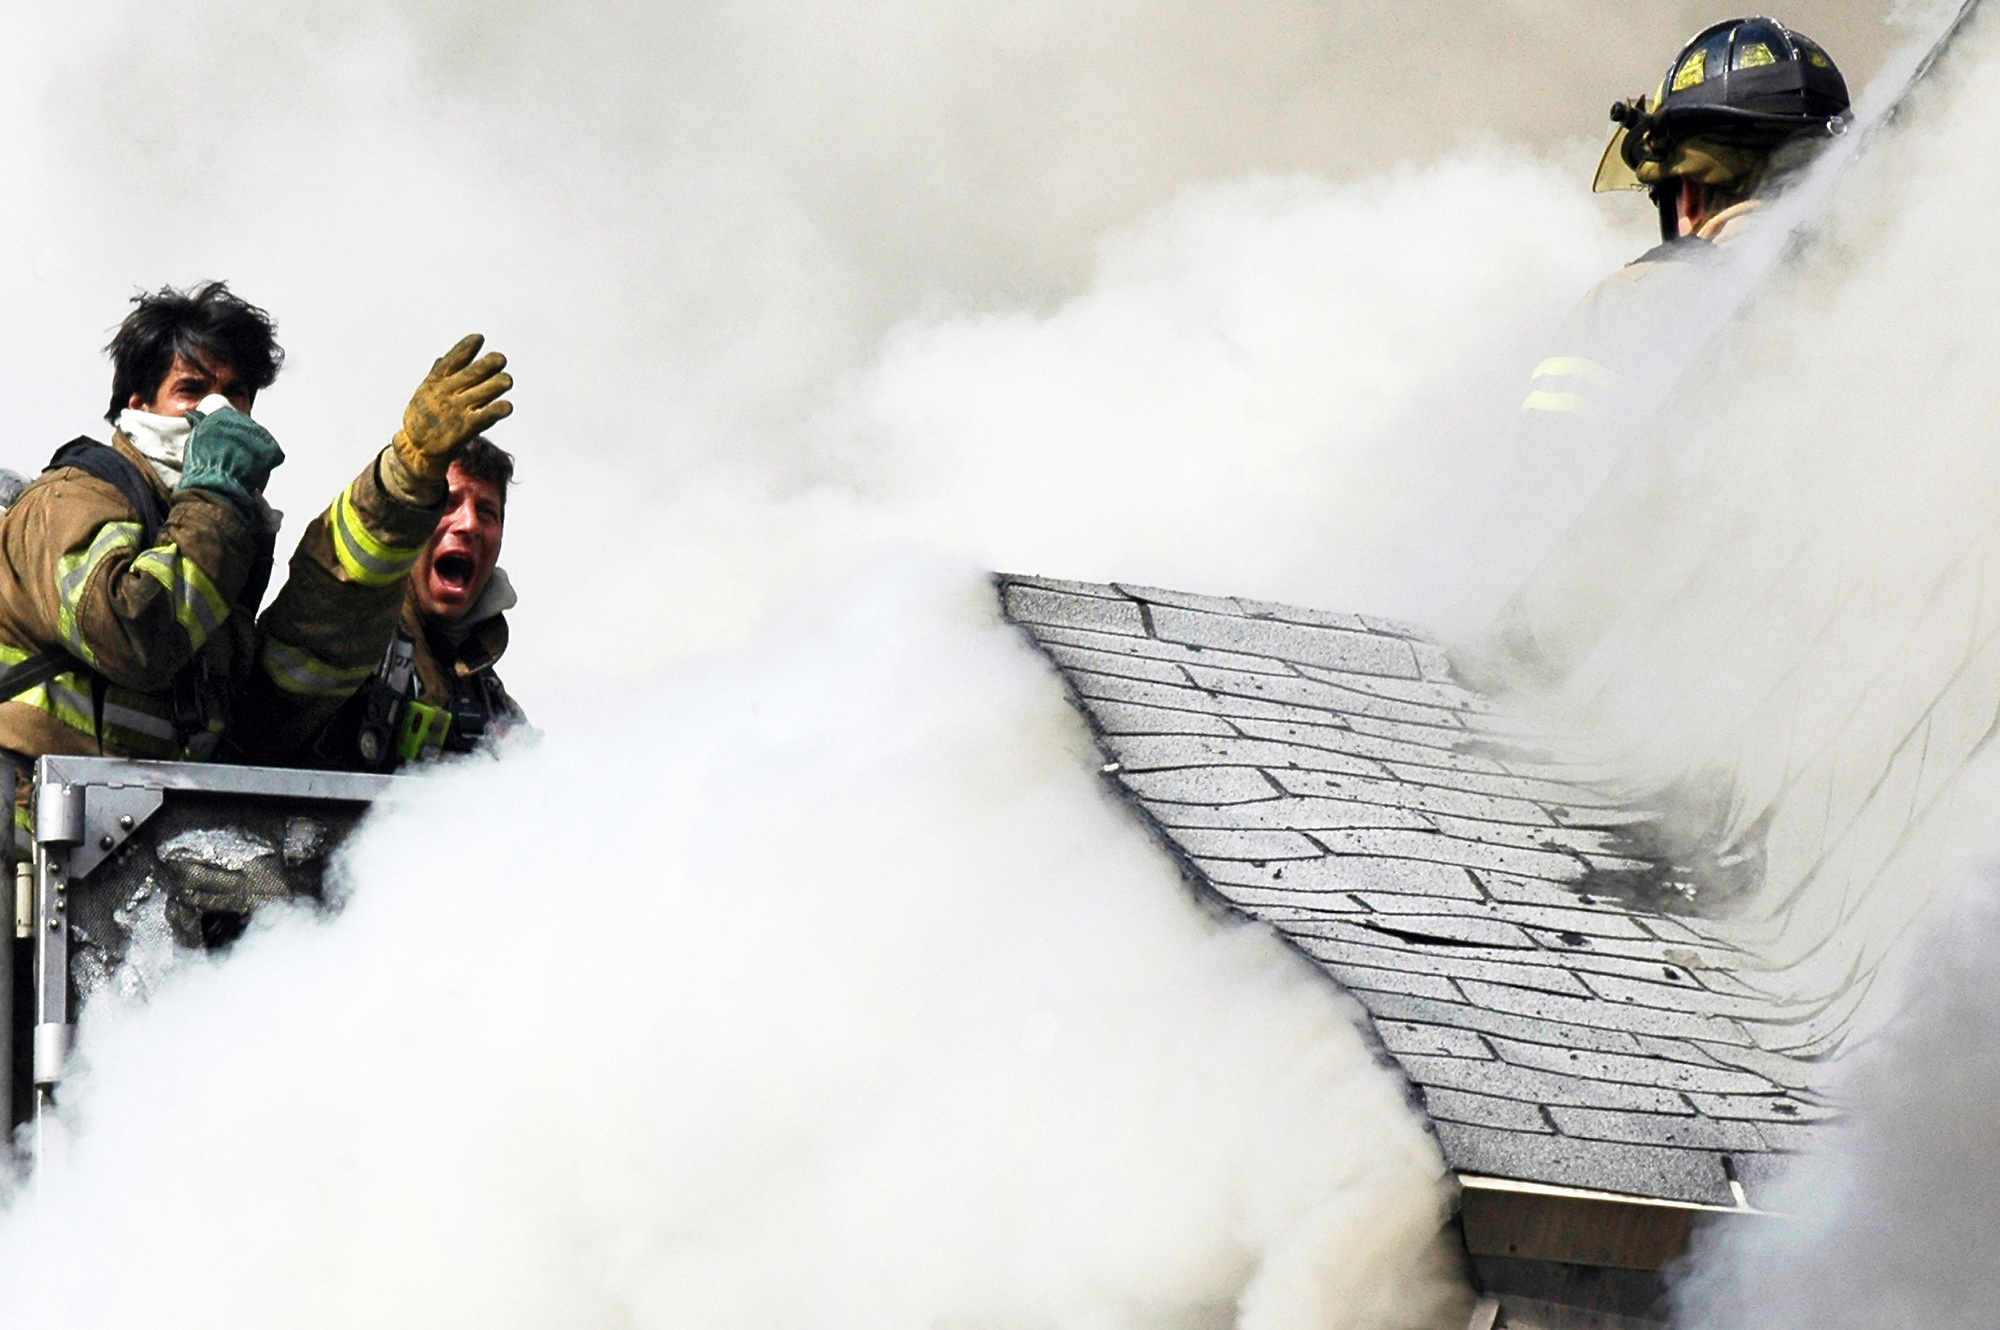 Firefighters reach out to others trapped on the roof of a house on Randolph Avenue while battling a three-alarm fire. The firefighters on the roof were rescued by those on the tower ladder. Four homes were damaged and four people were injured including three firefighters.